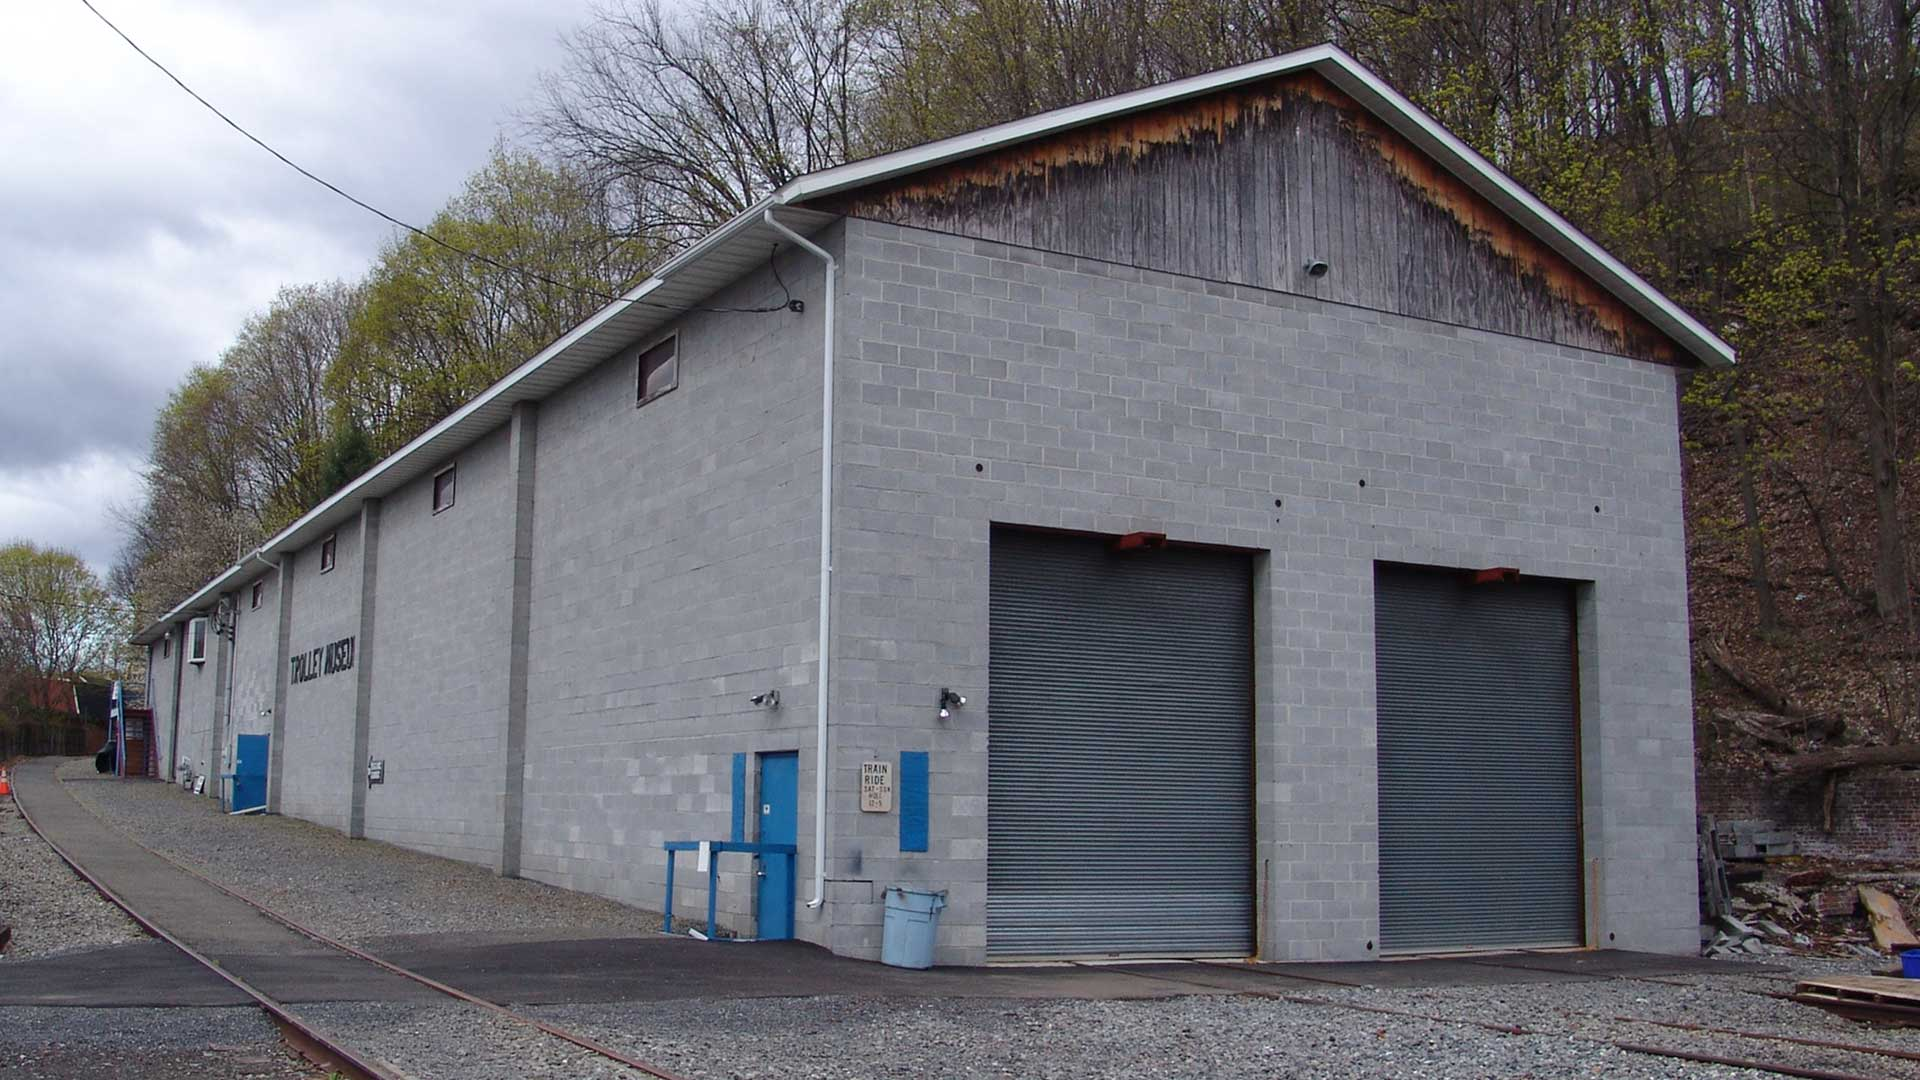 East side of the Kingston Trolley Museum before renovation